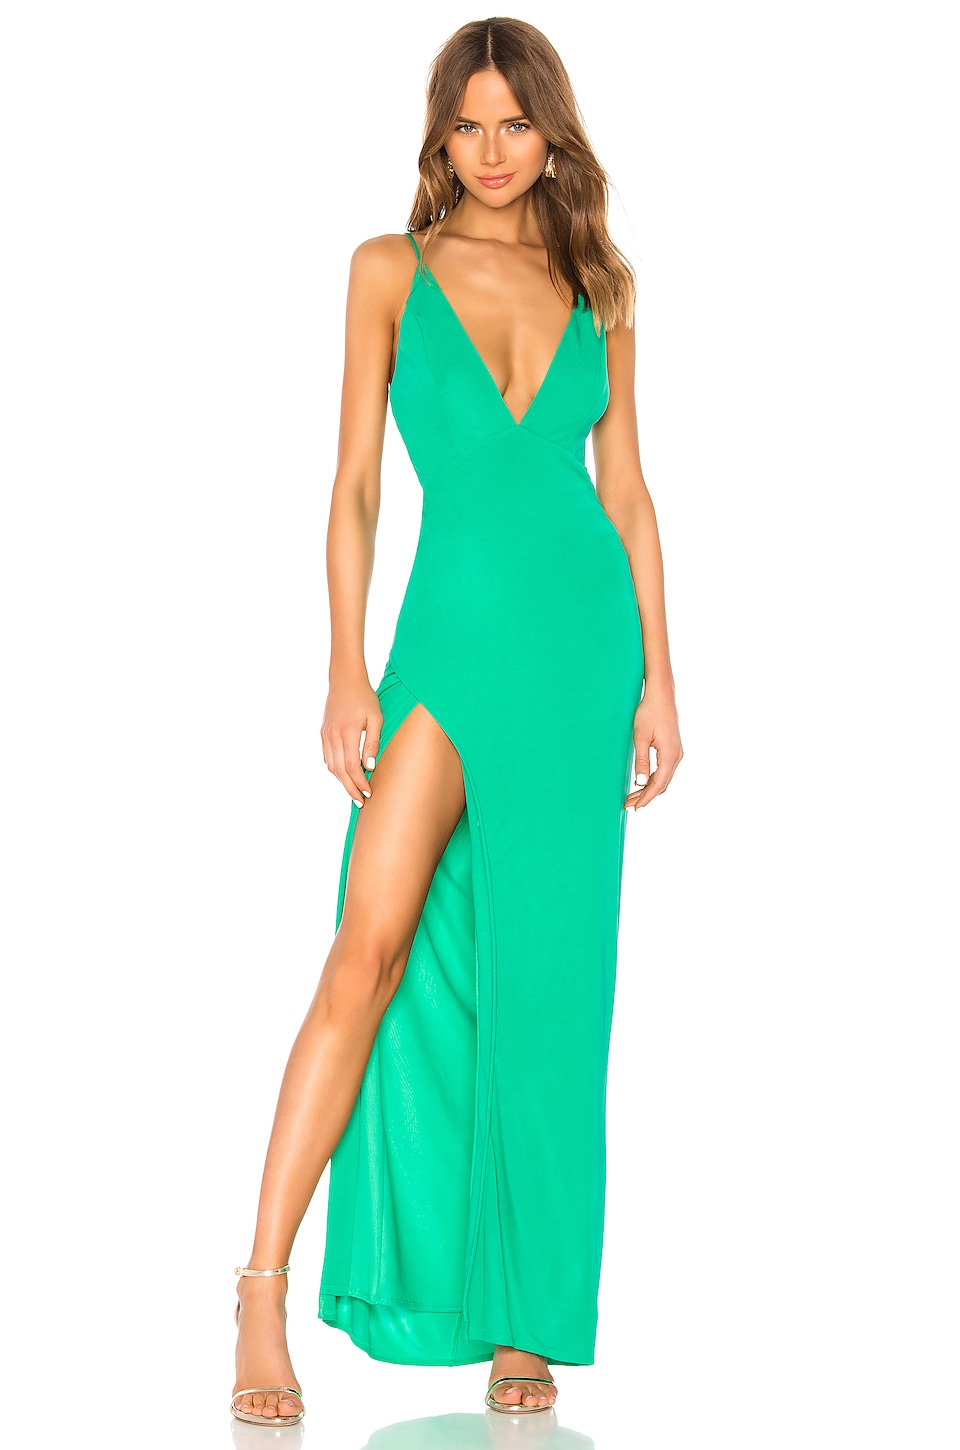 Maddox Gown                   Lovers + Friends                                                                                                                                                     Sale price:                                                                        CA$ 149.08                                                                                                  Previous price:                                                                       CA$ 285.09 30